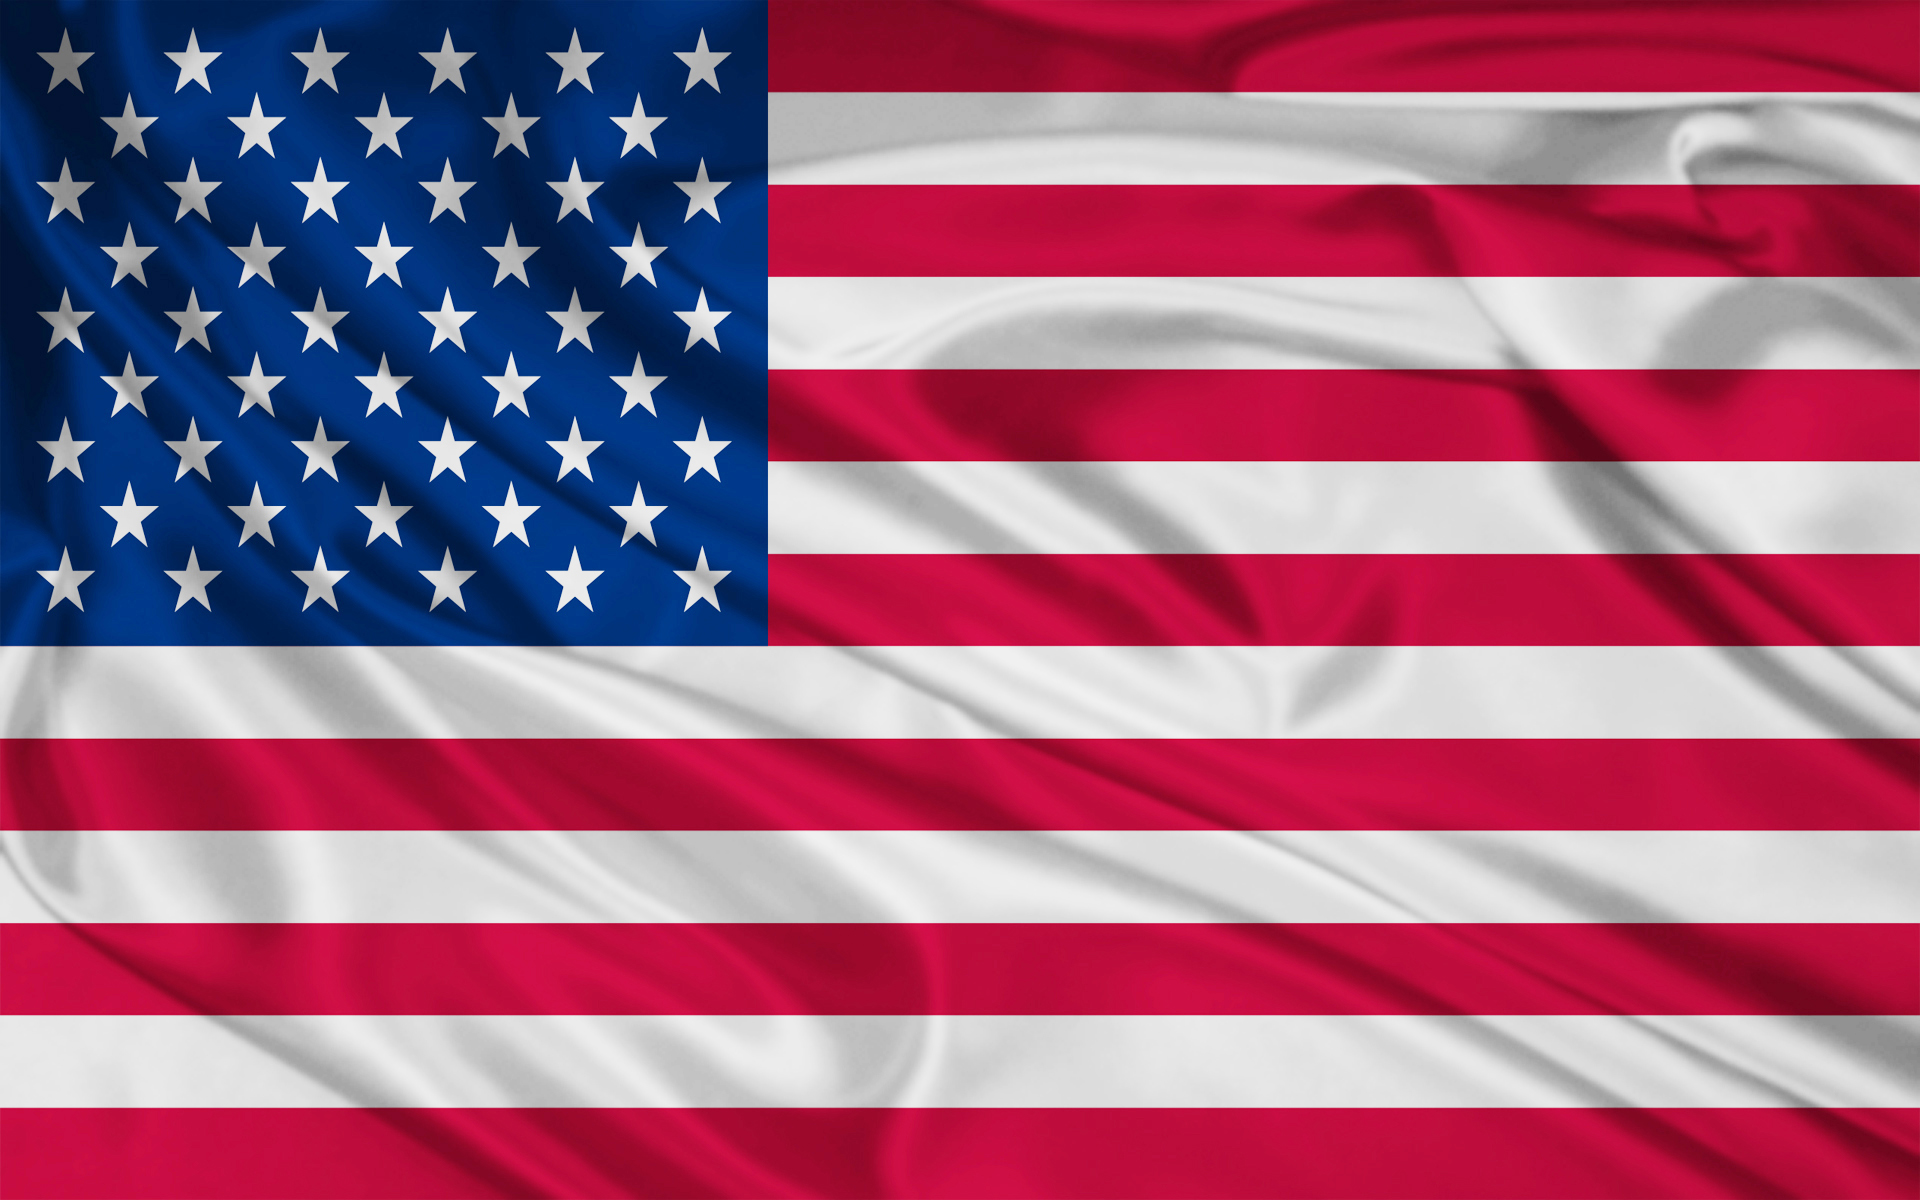 United States Flag wallpapers United States Flag stock photos 1920x1200